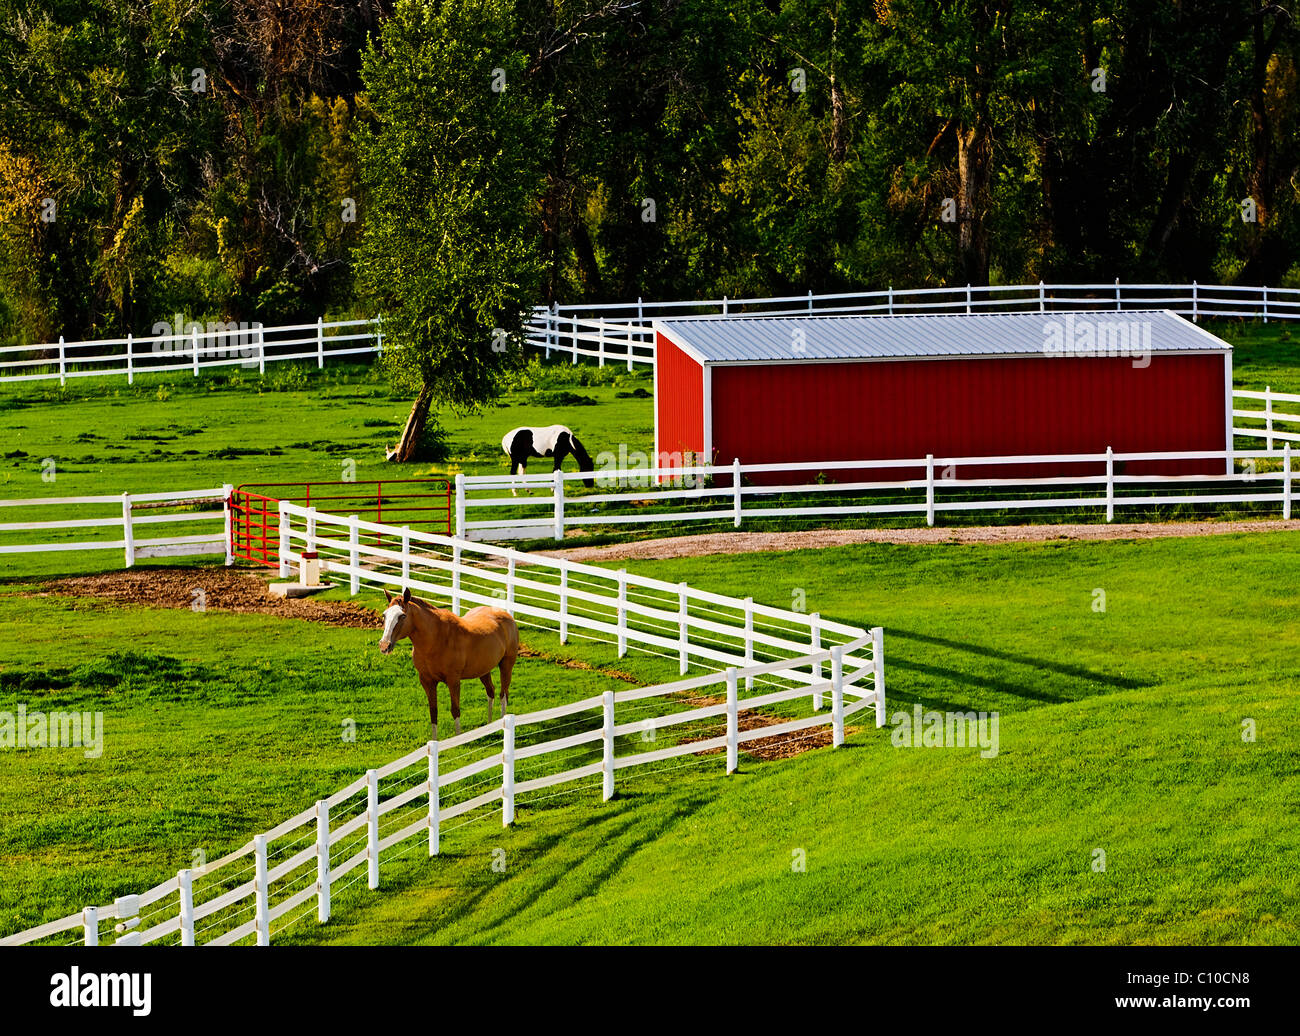 Cow on green pasture with red barn with grain silo royalty free stock - Horses And White Picket Fence On Pasture With Red Barn Stock Image